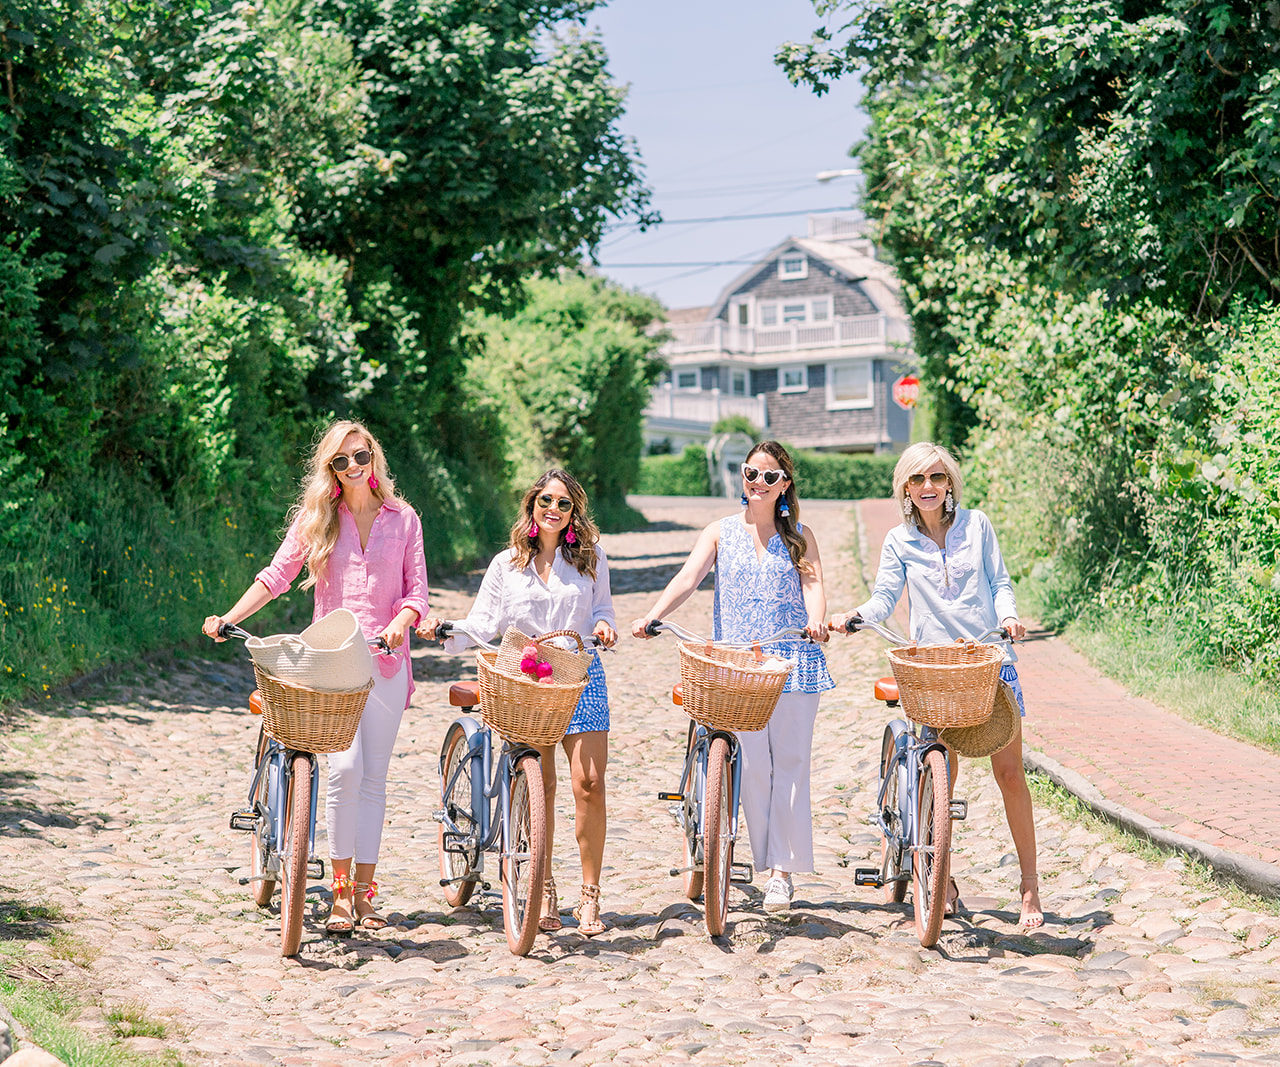 A Review of Nantucket with Lilly Pulitzer & White Elephant